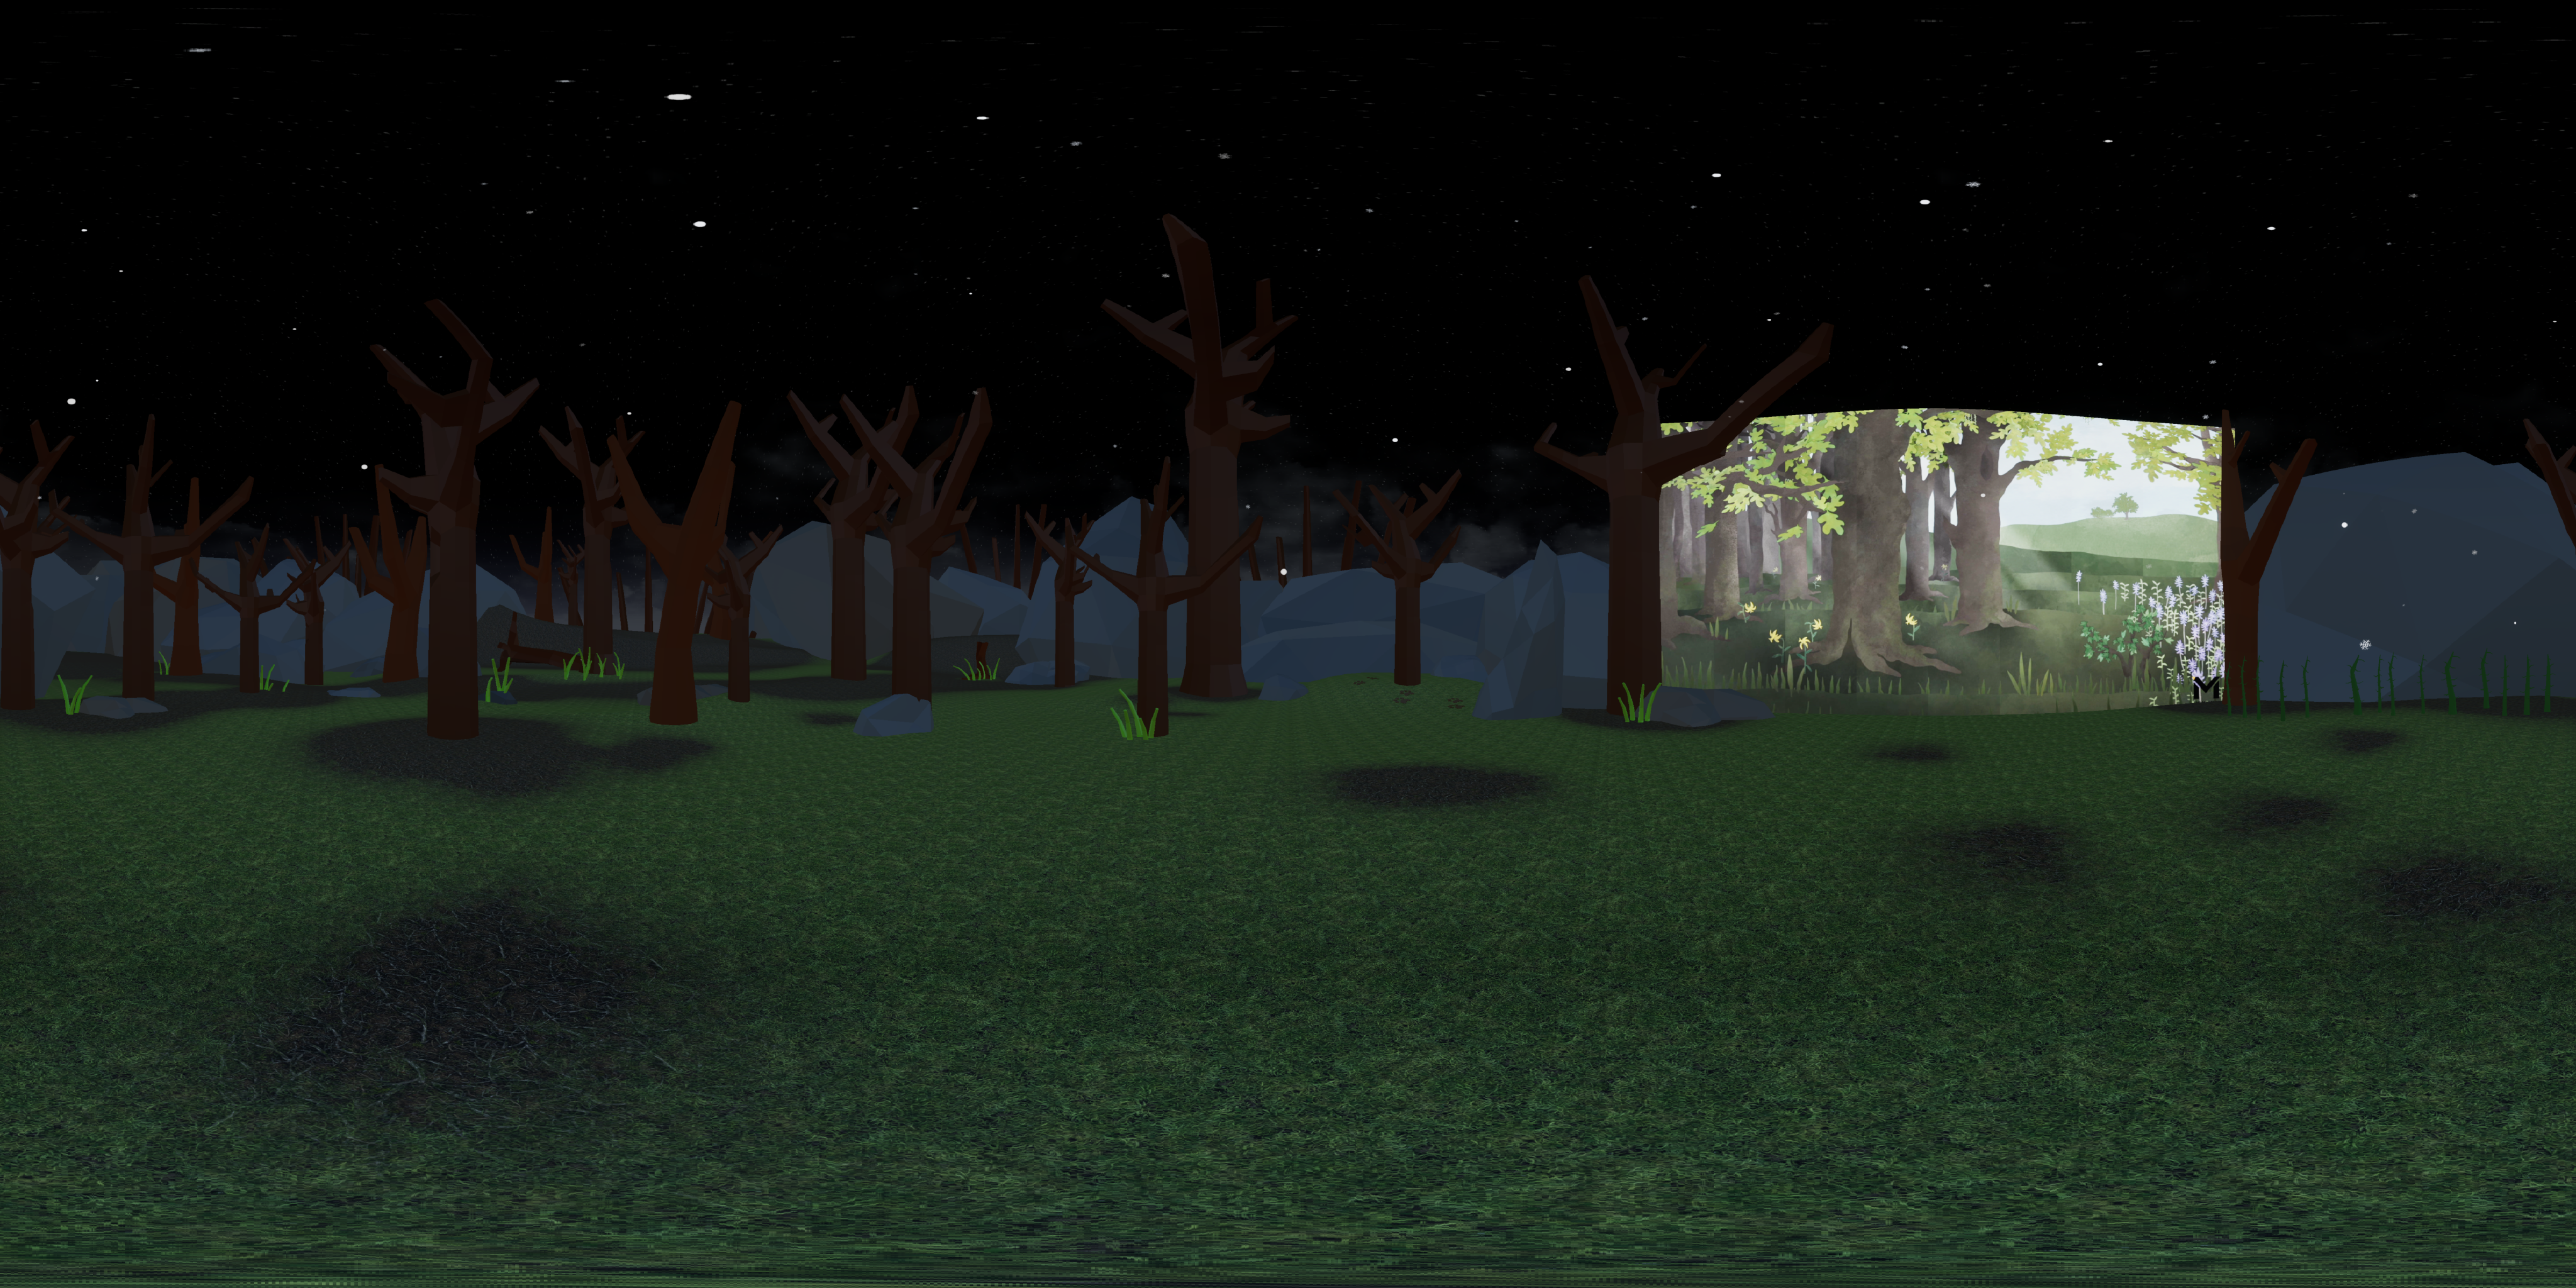 The virtual reality forest at night